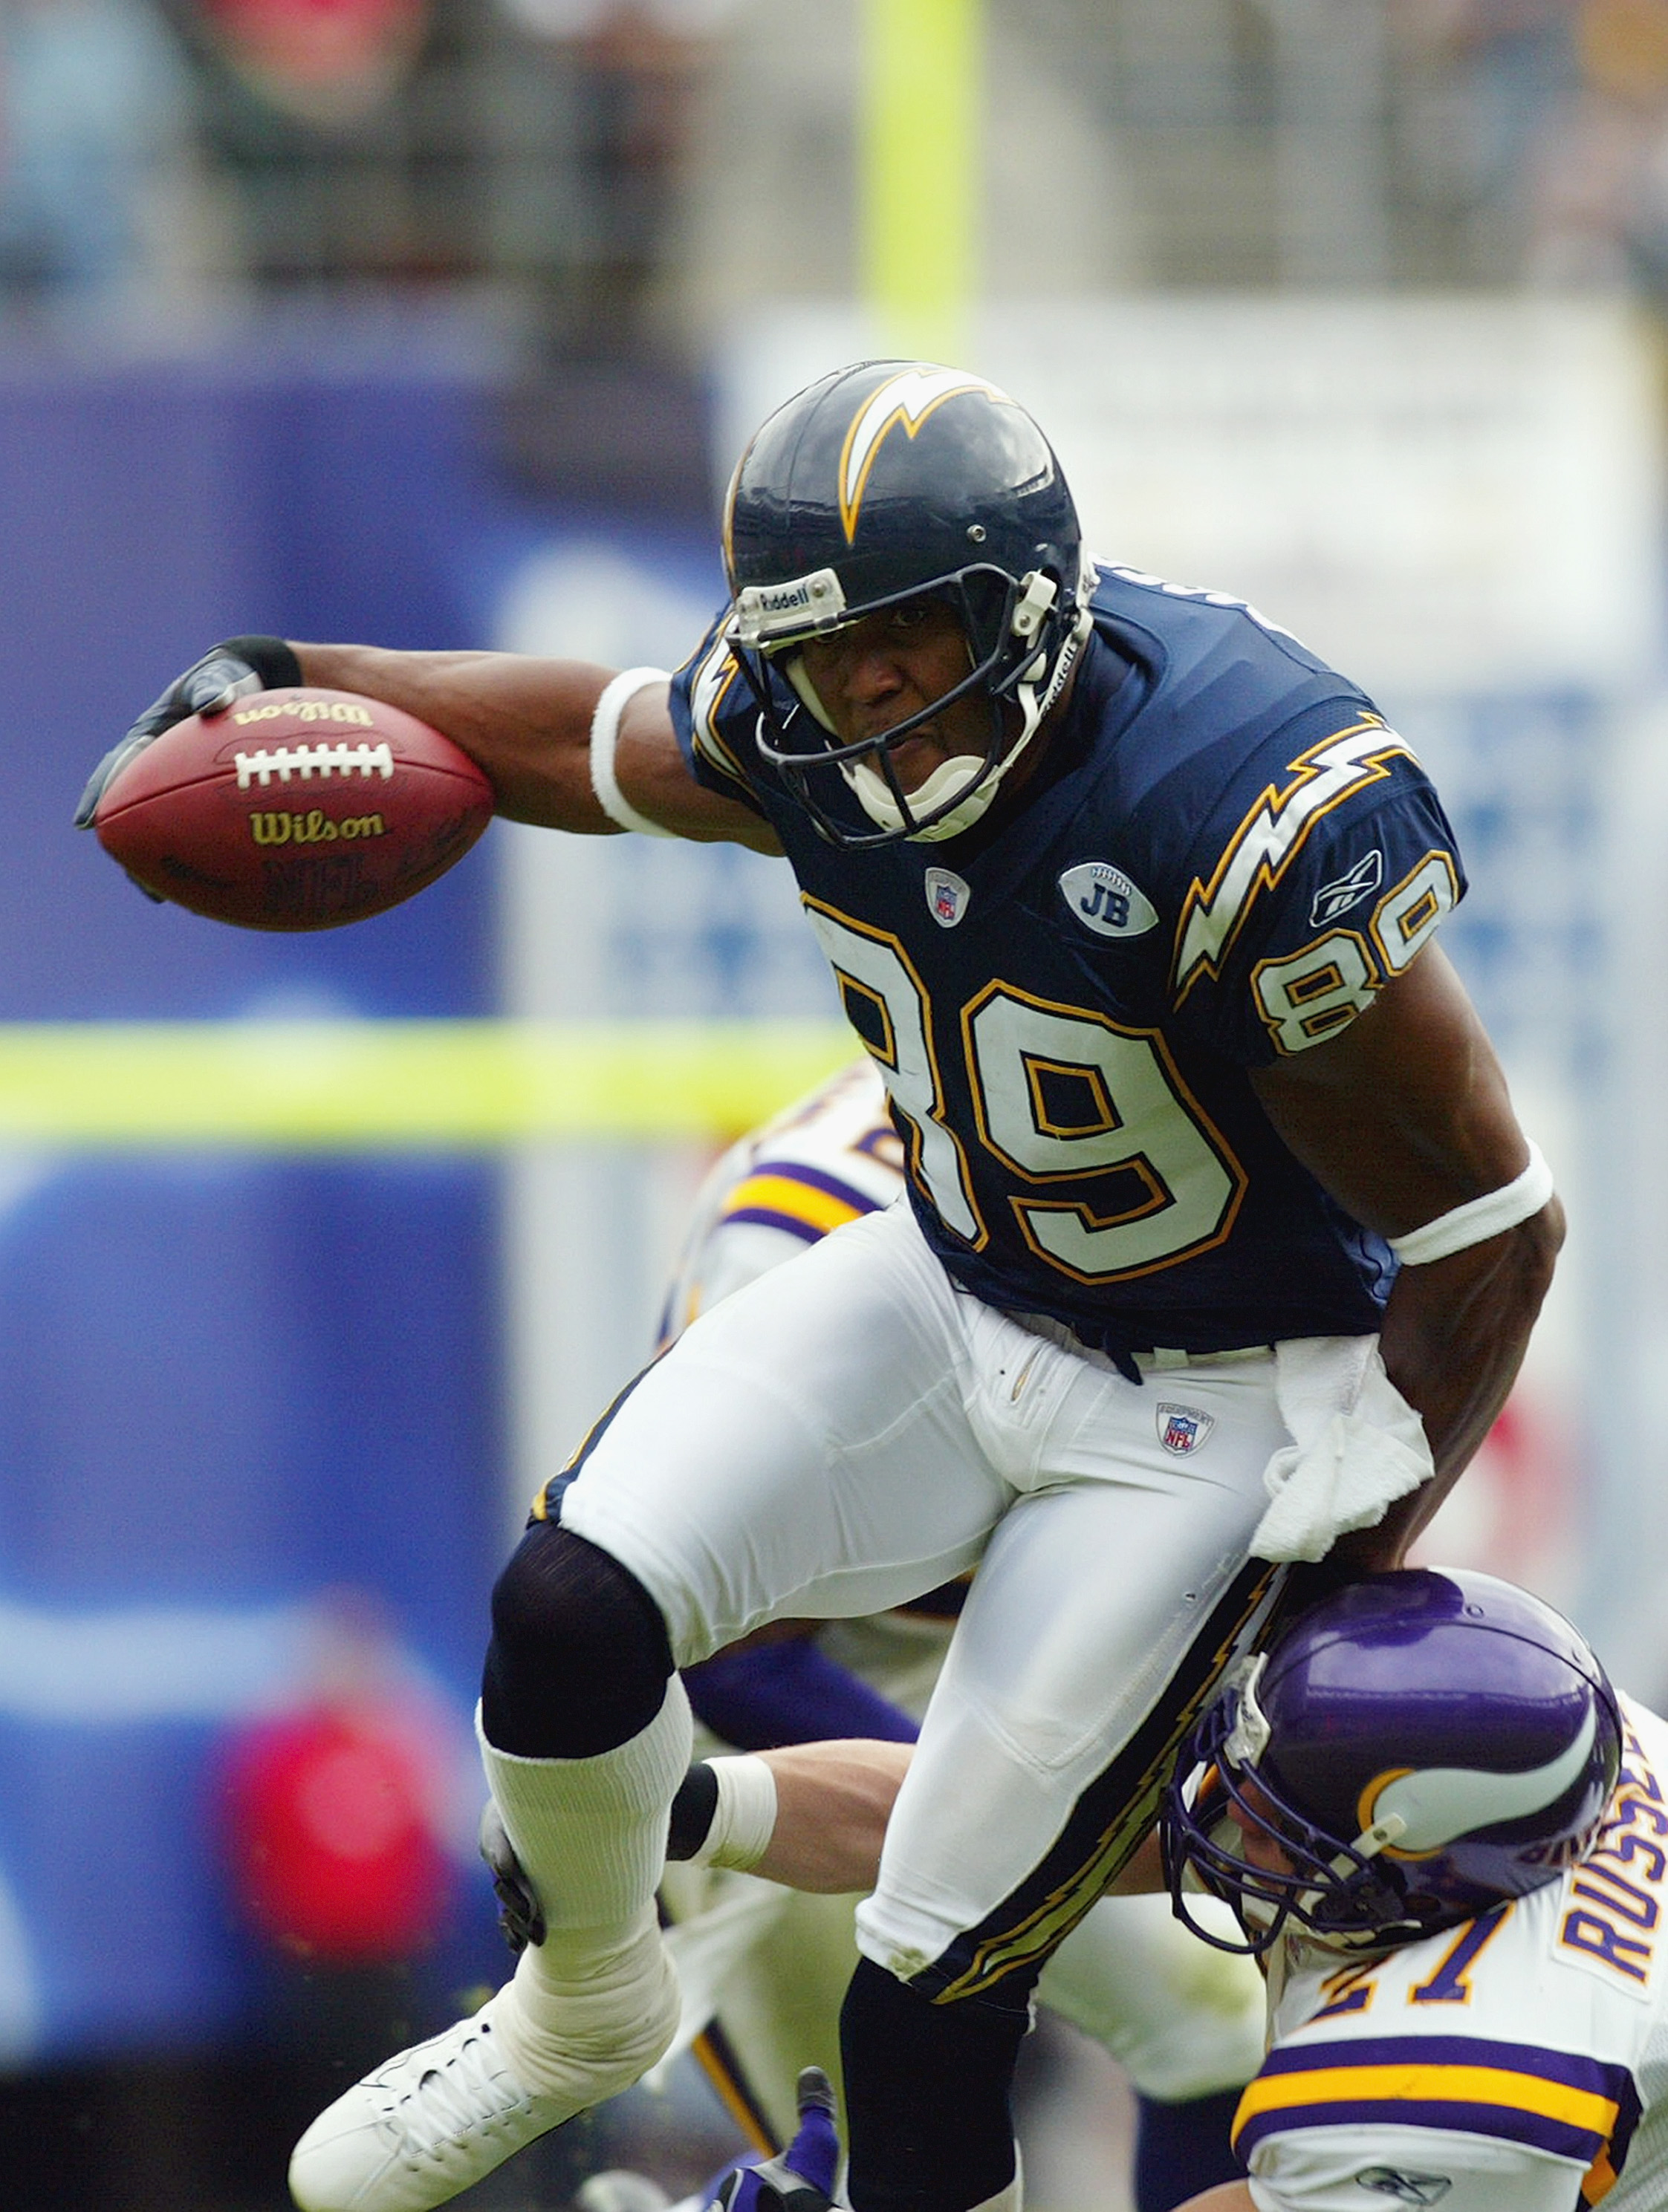 SAN DIEGO - NOVEMBER 9:  David Boston #89 of the San Diego Chargers runs past Brian Russell #27 of the Minnesota Vikings on November 9, 2003 at Qualcomm Stadium in San Diego, California.  The Chargers defeated the Vikings 42-28.  (Photo by Donald Miralle/